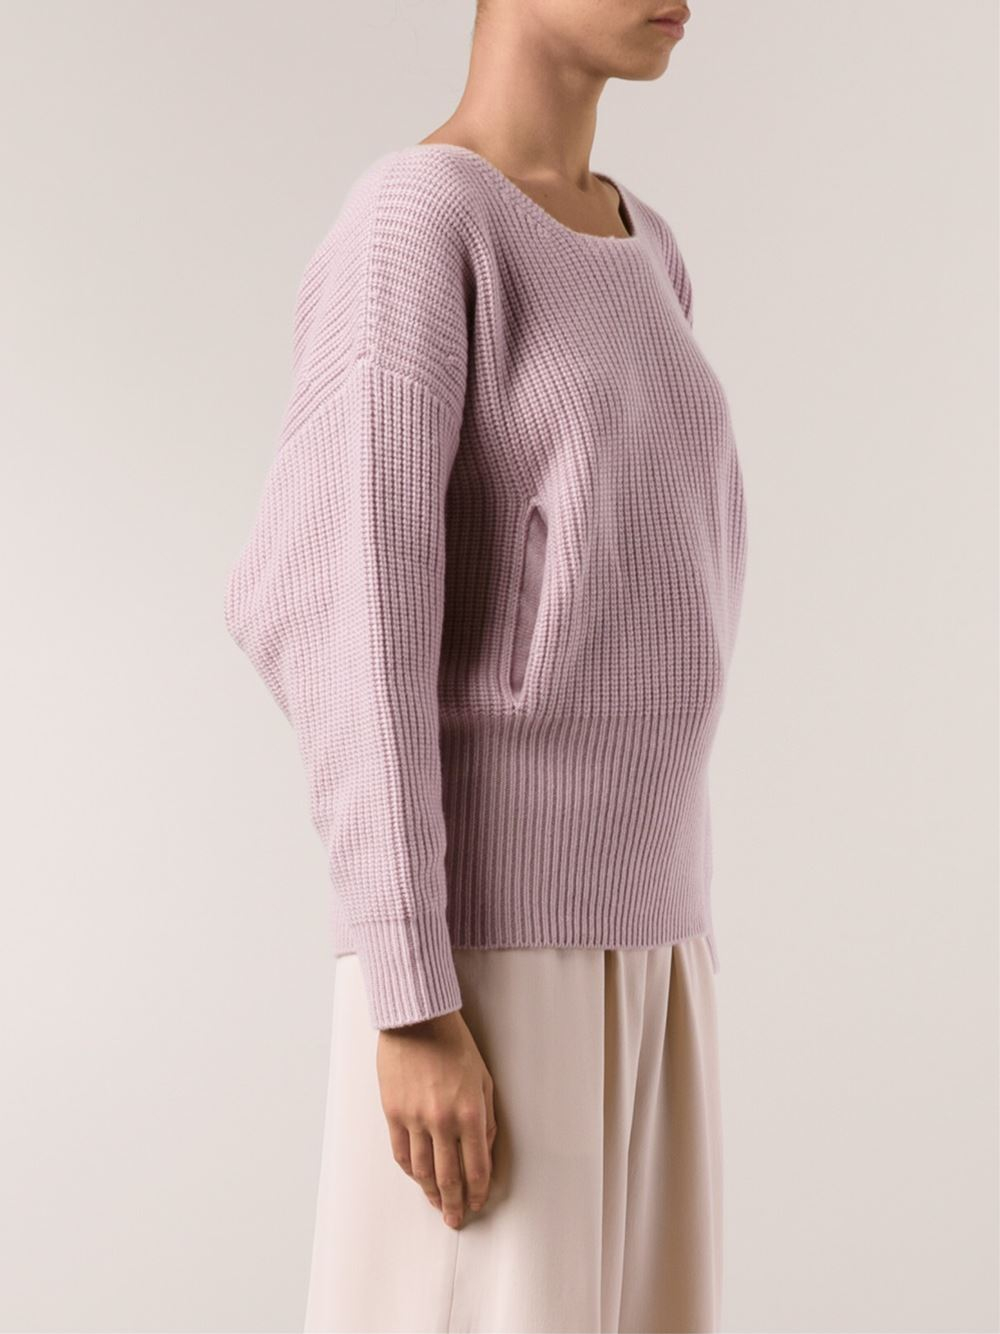 Chloé Ribbed Sweater in Pink | Lyst